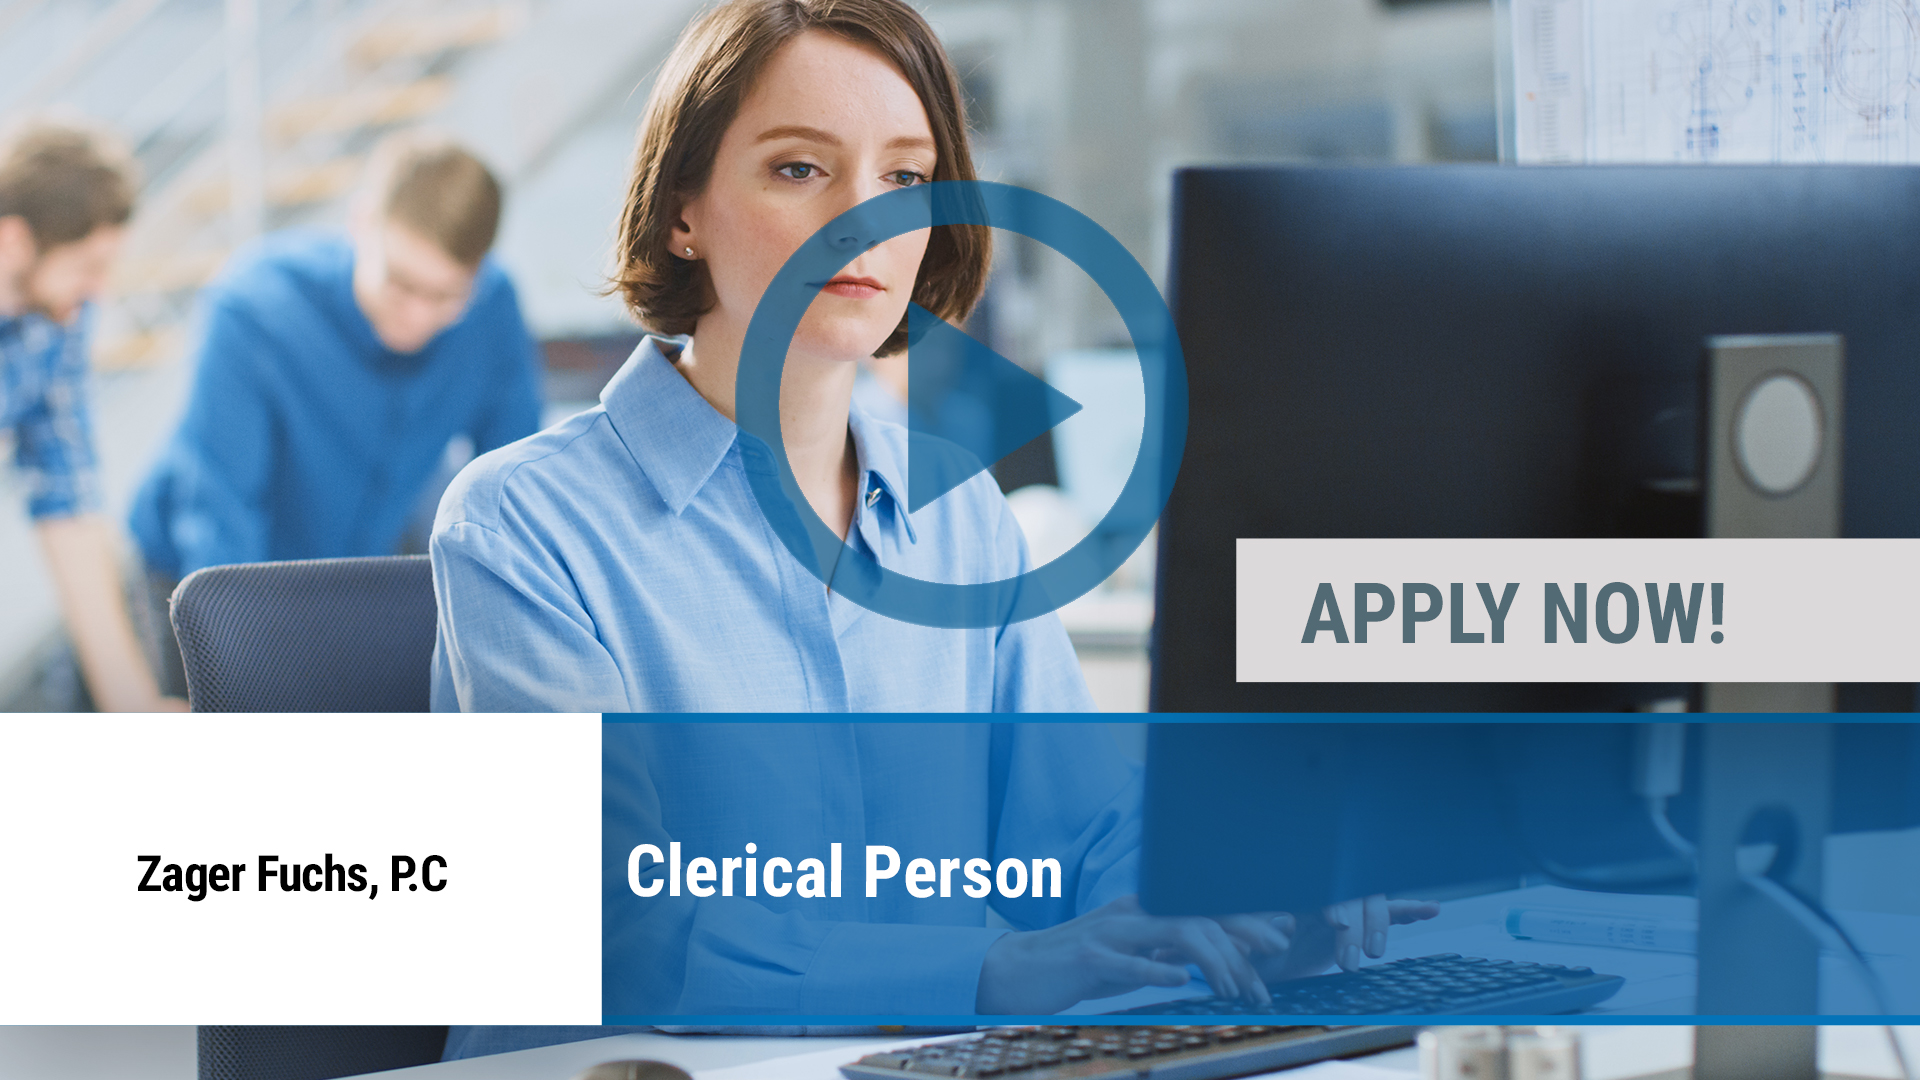 Watch our careers video for available job opening Clerical Person in Red Bank, NJ